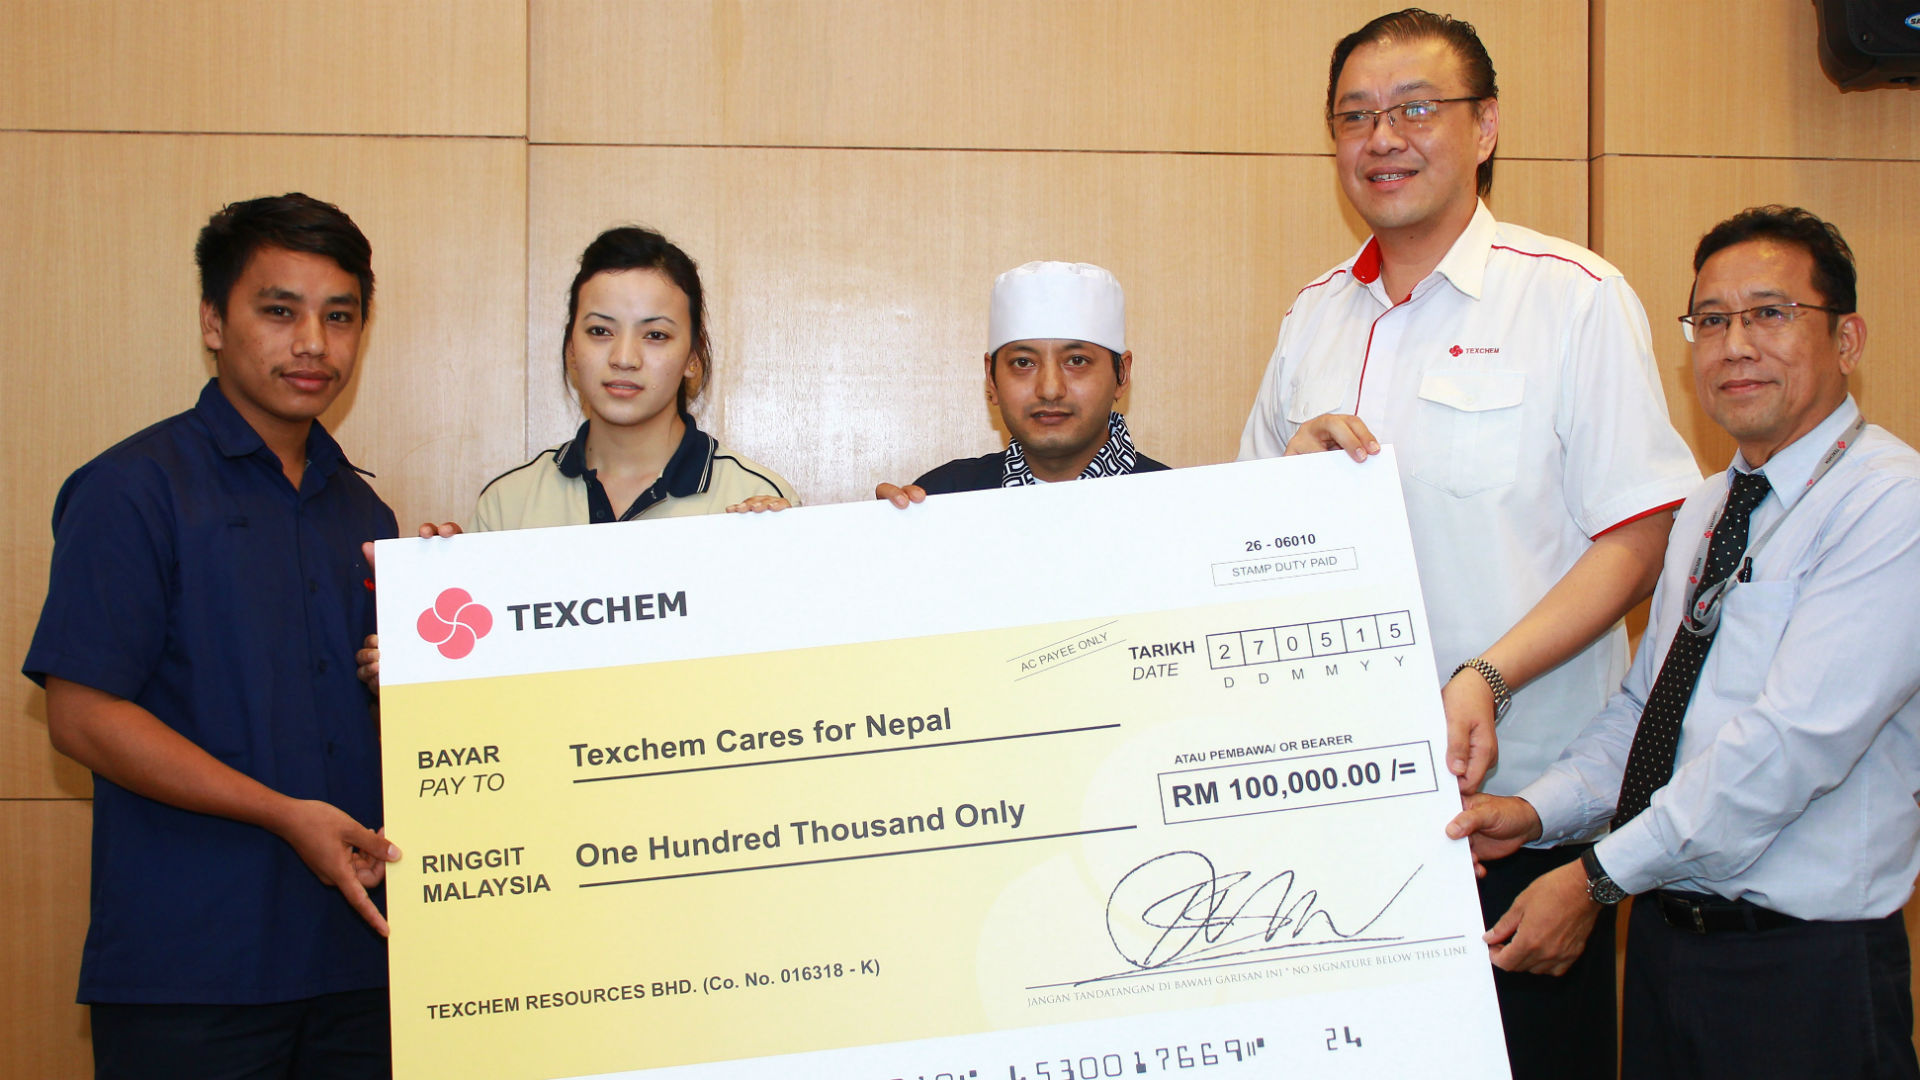 Texchem Cares for Nepal